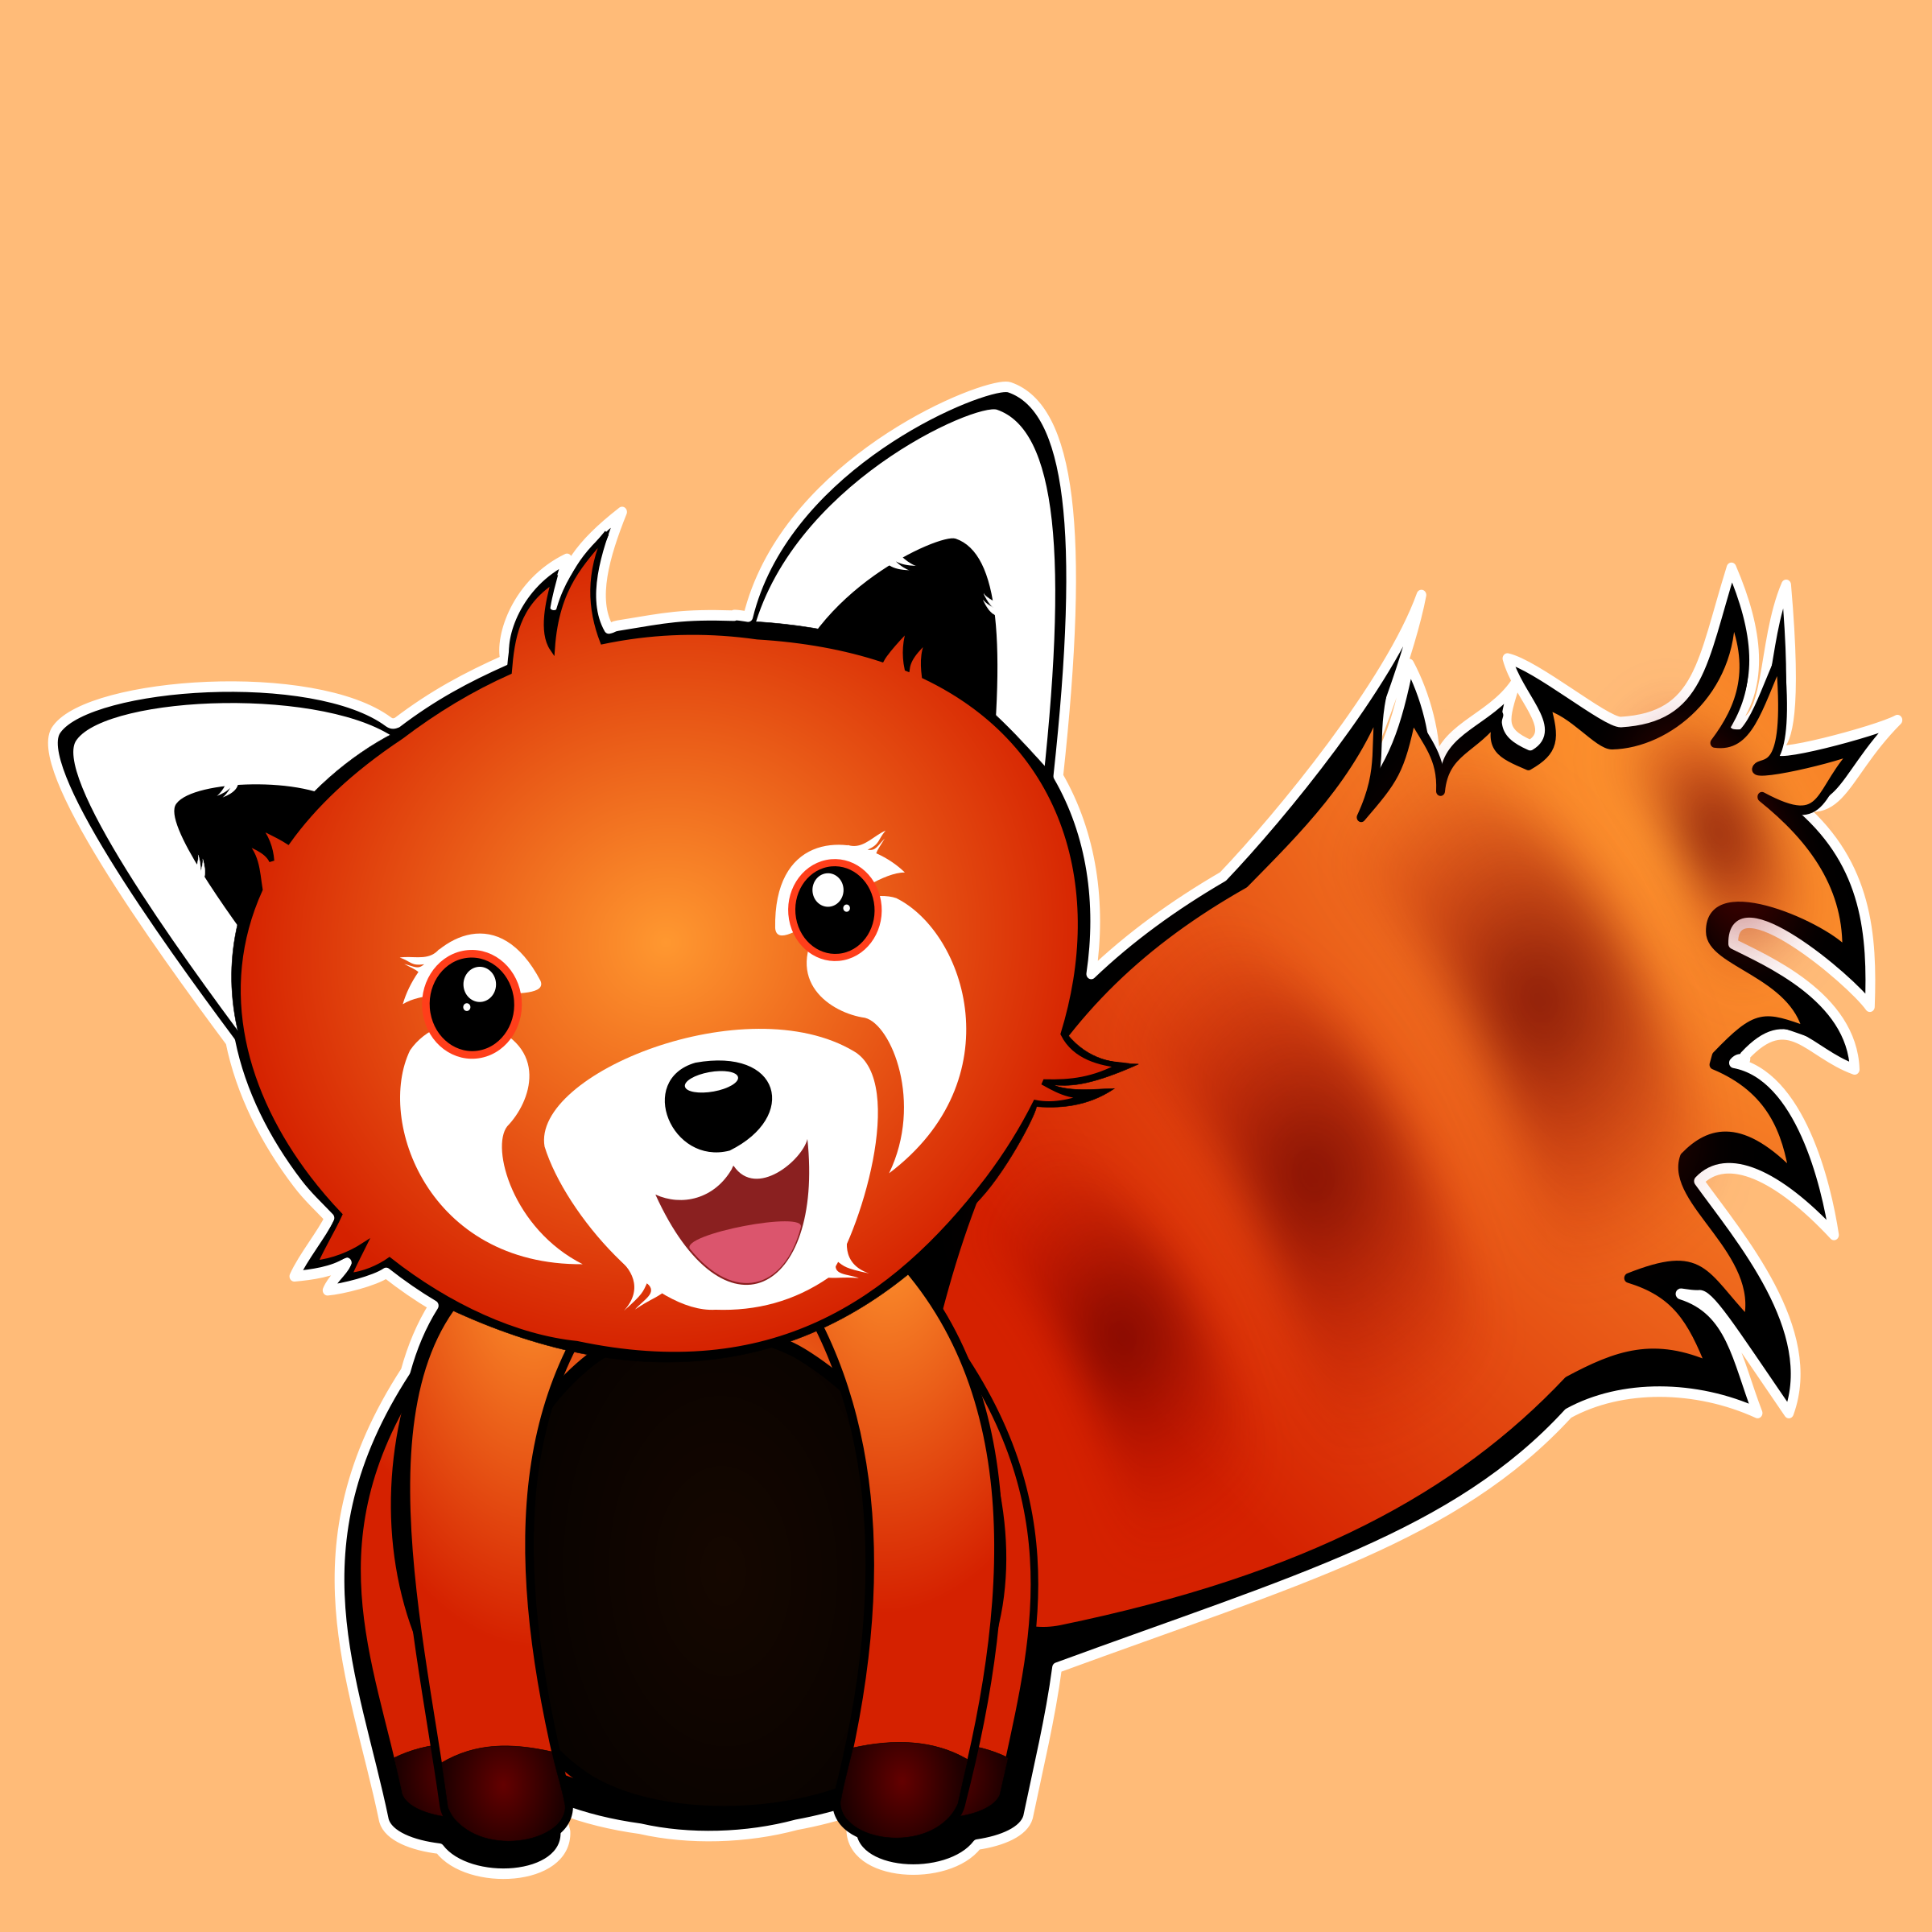 Red Panda by sonoftroll